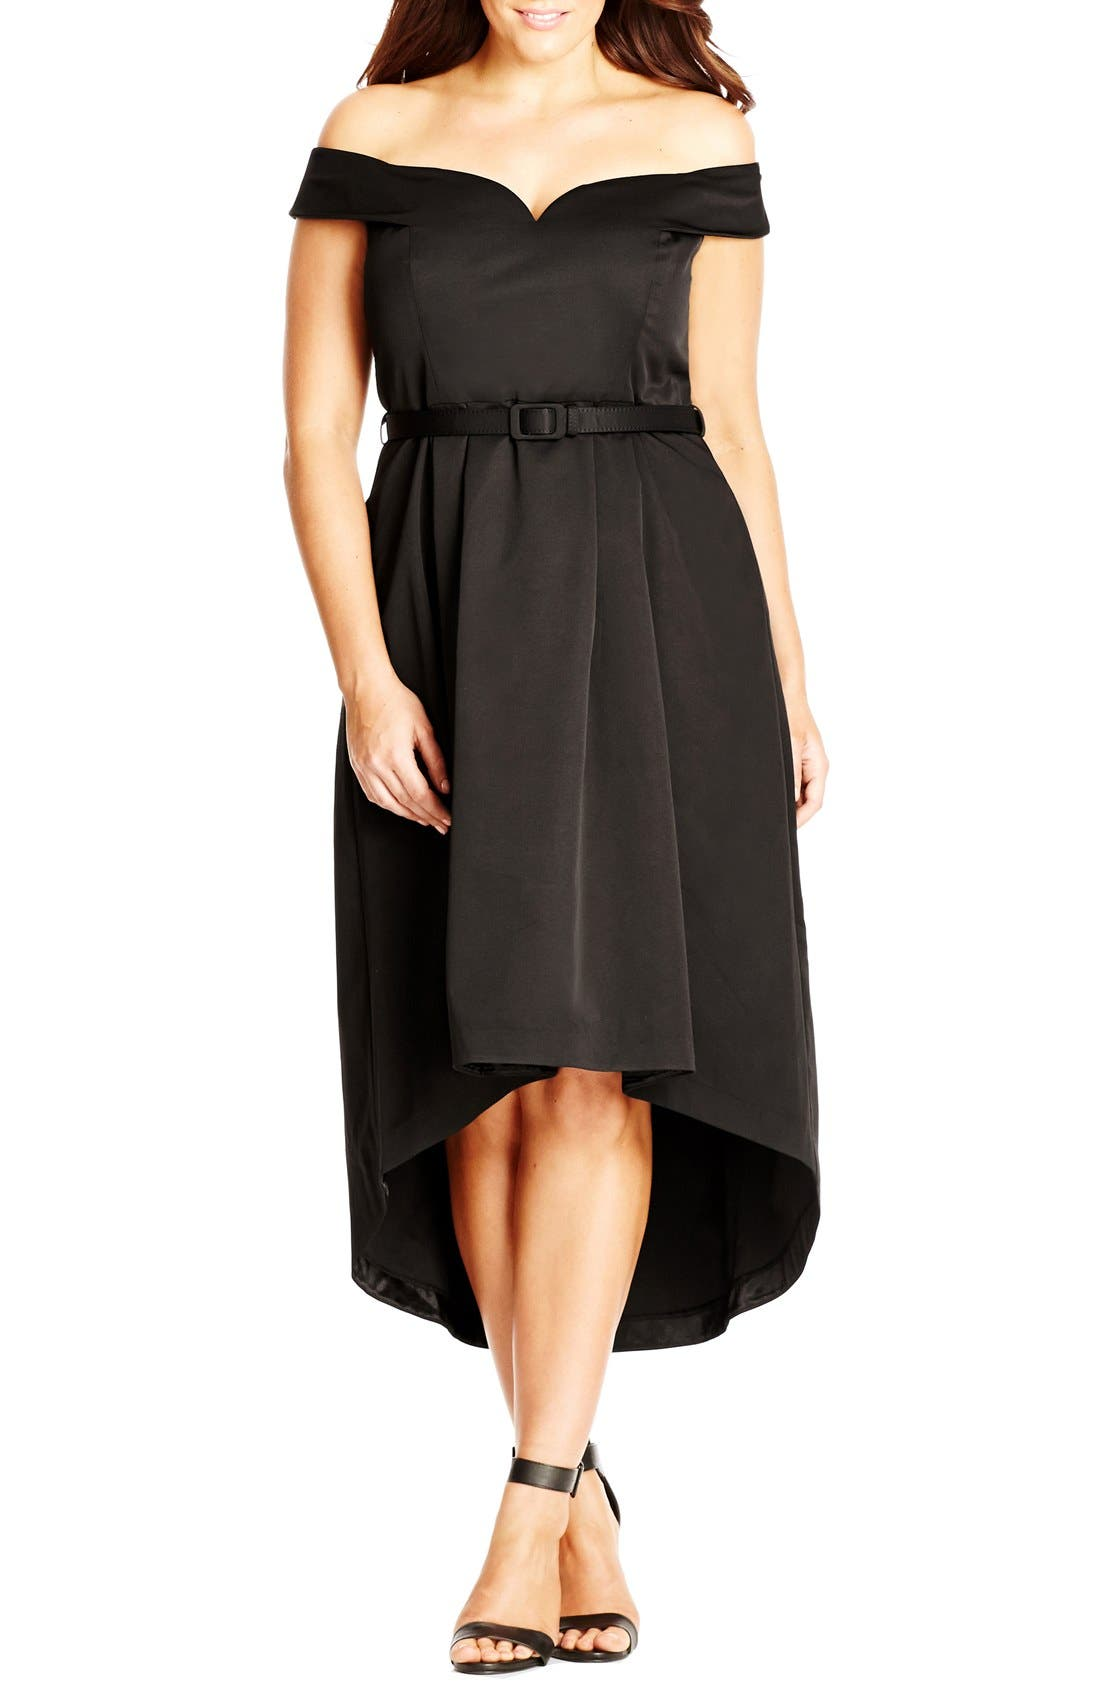 Alternate Image 1 Selected - City Chic High/Low Off the Shoulder Dress (Plus Size)